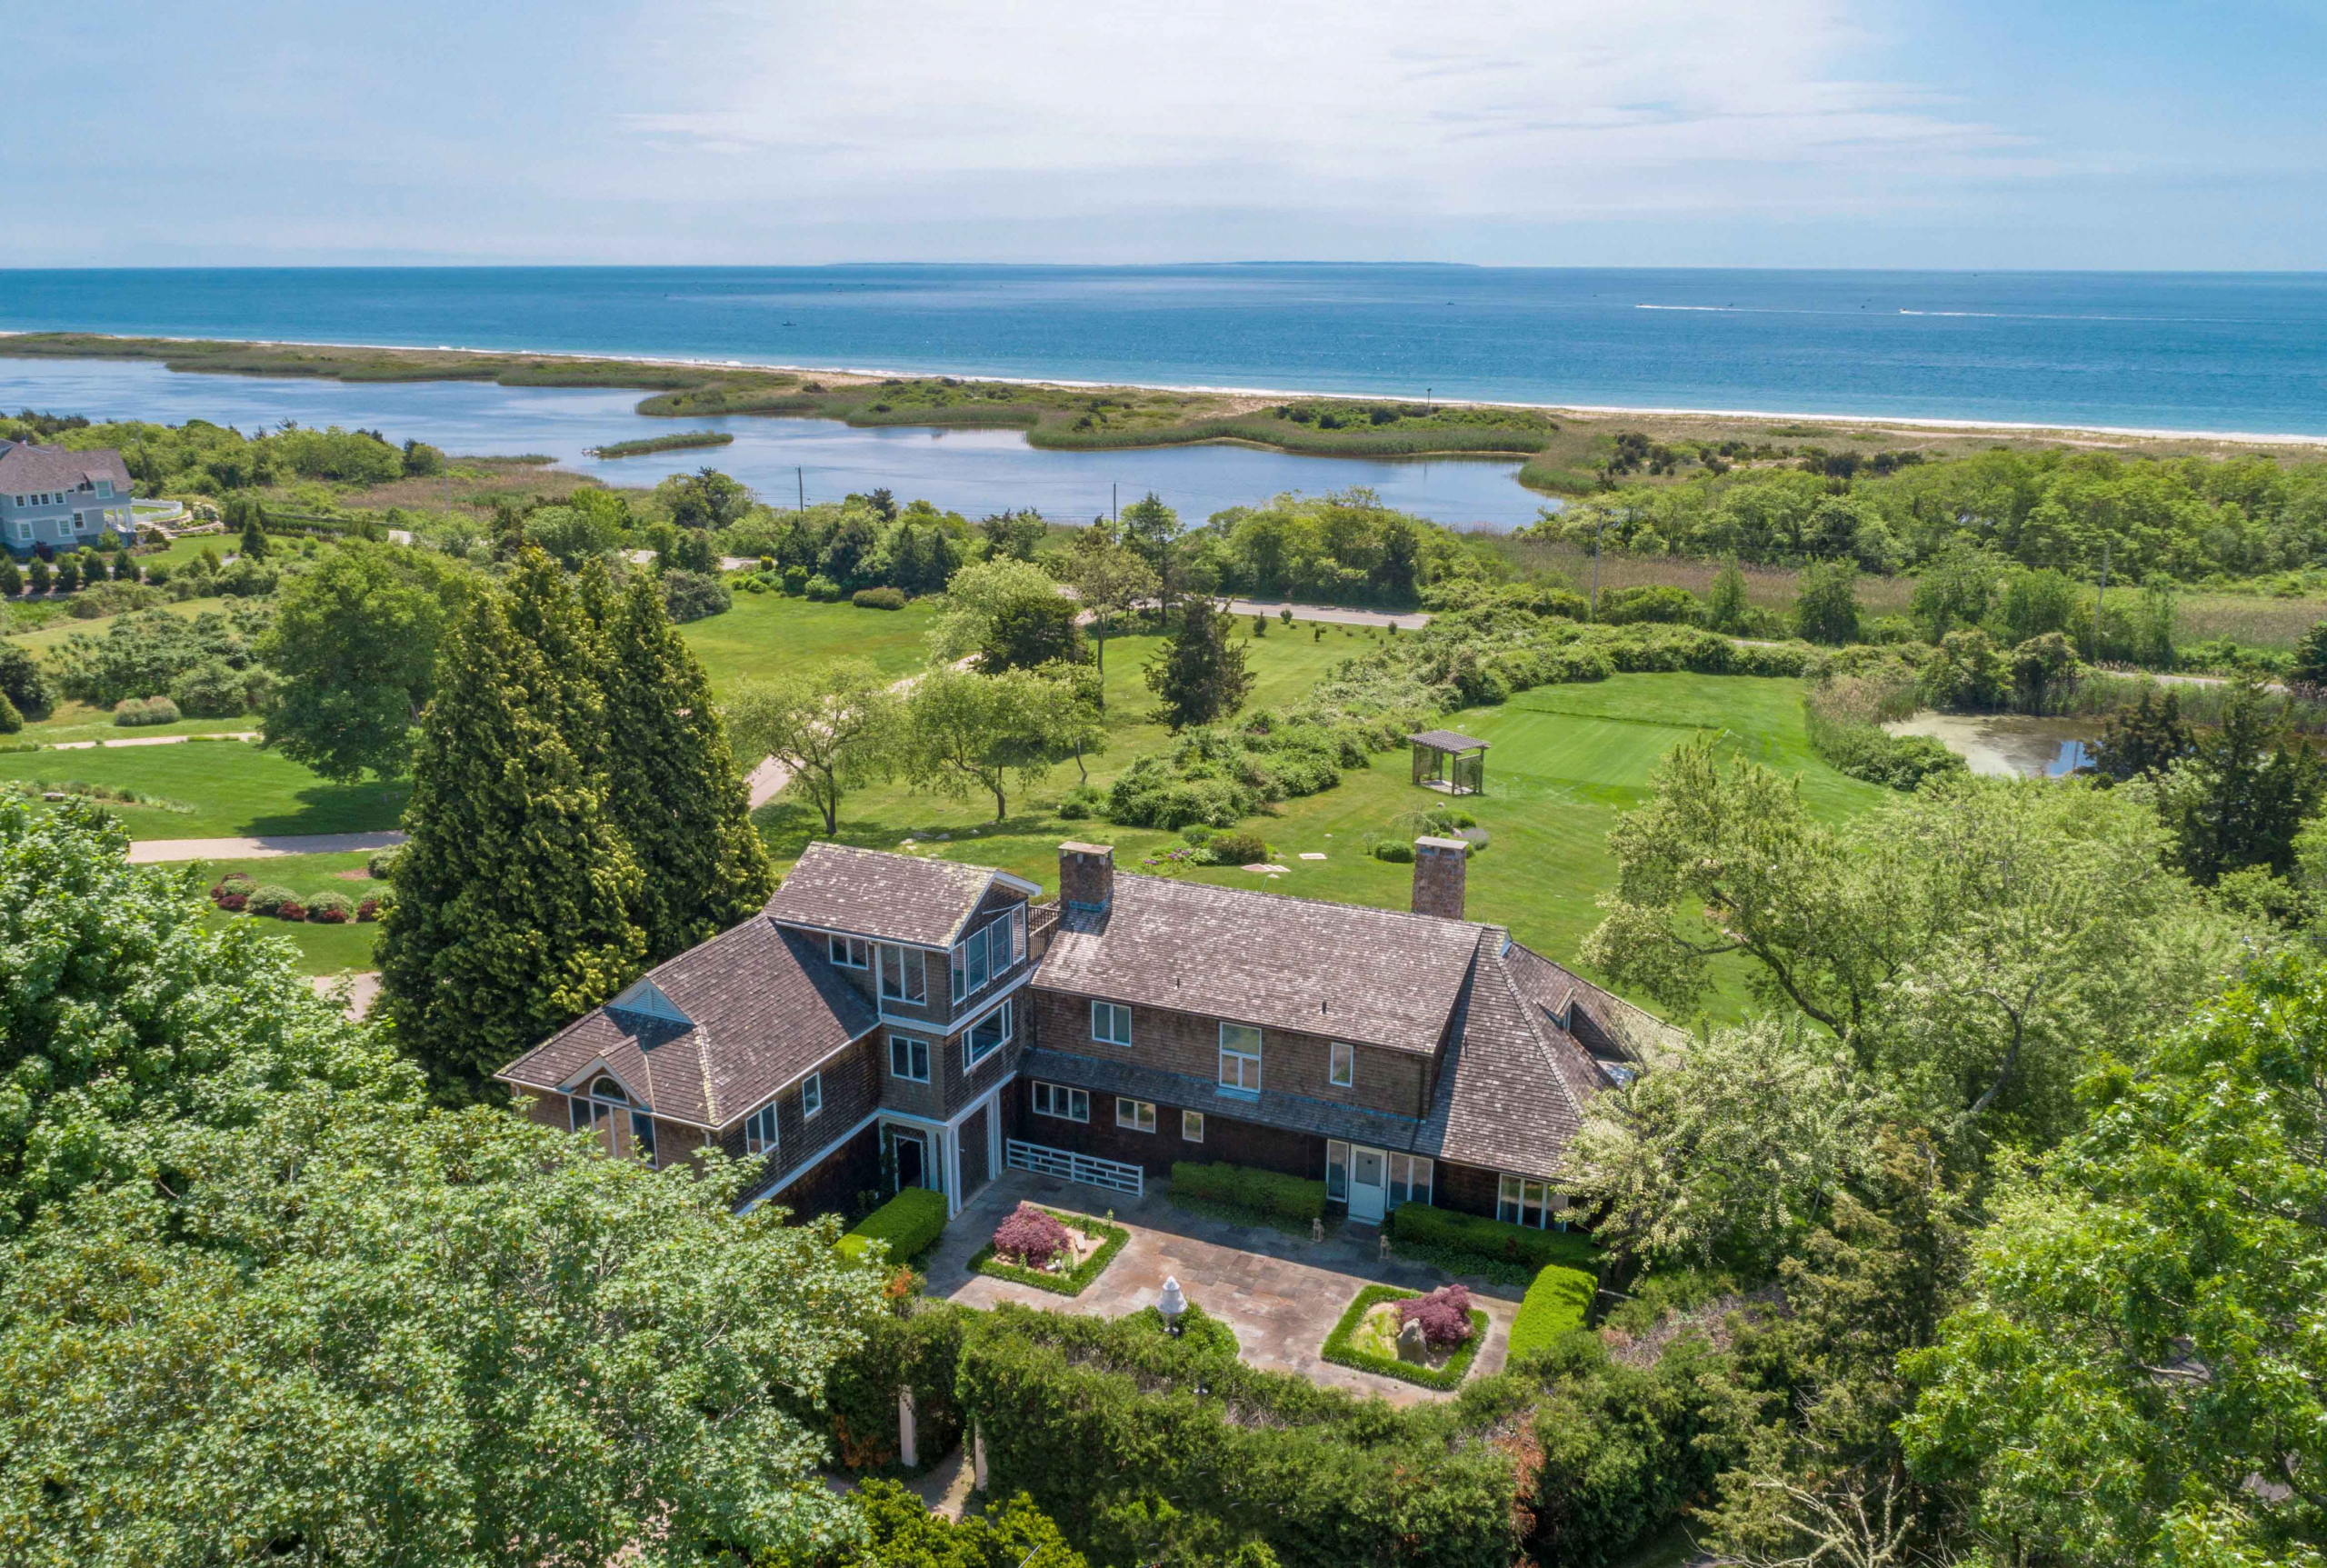 OCEAN VIEW WATCH HILL ESTATE SELLS FOR $3,072,222,  MARKING THE 3RD HIGHEST SALE IN WESTERLY, YEAR-TO-DATE*